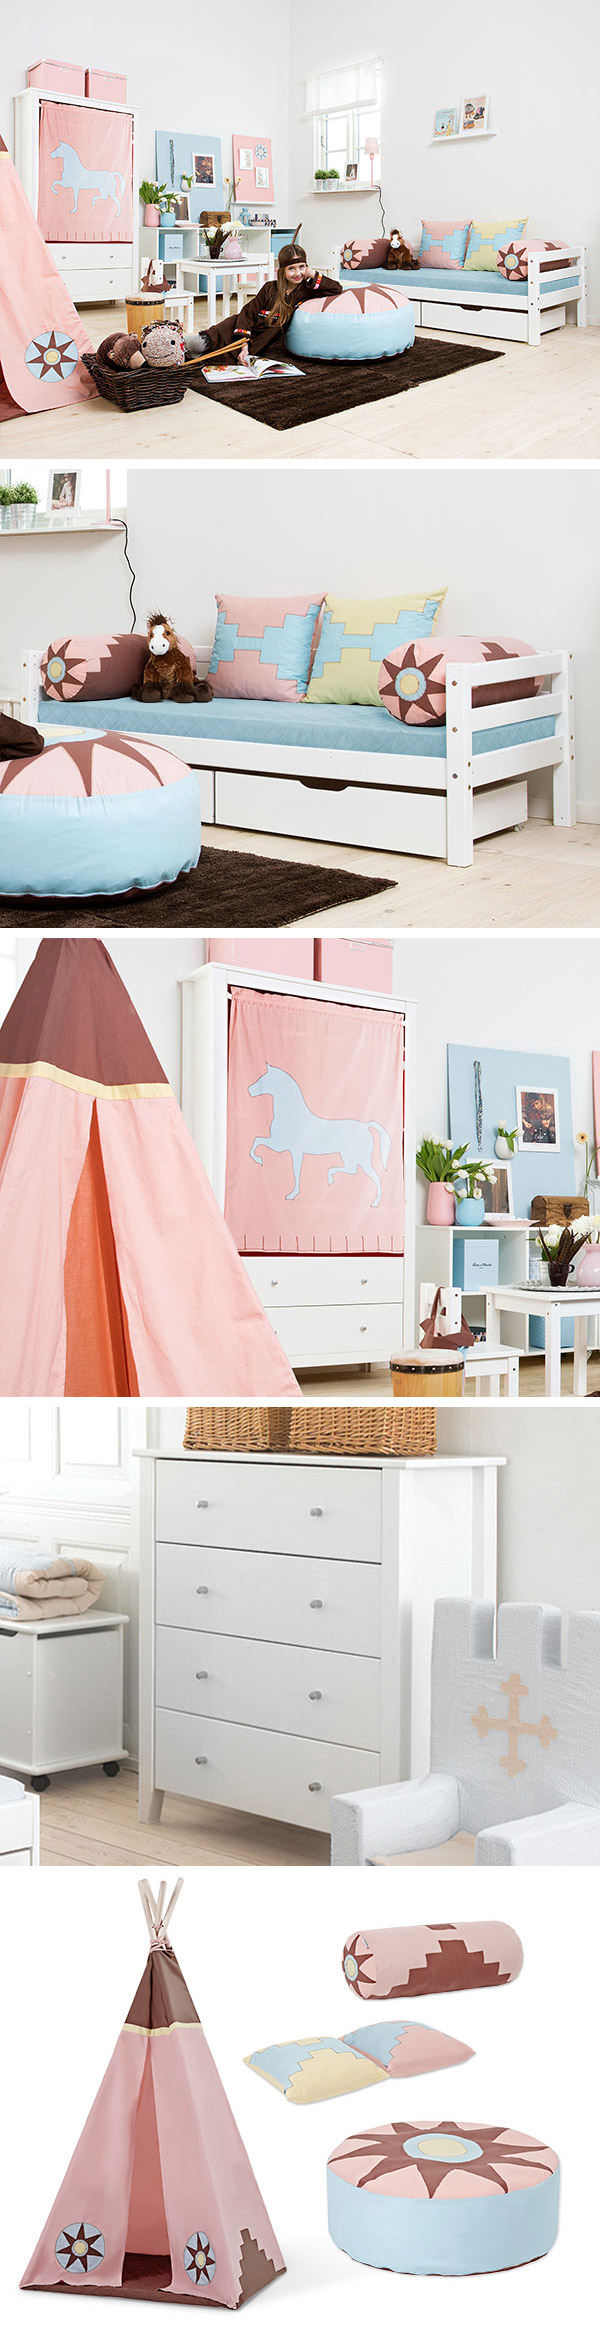 pin von auf kinderzimmer. Black Bedroom Furniture Sets. Home Design Ideas